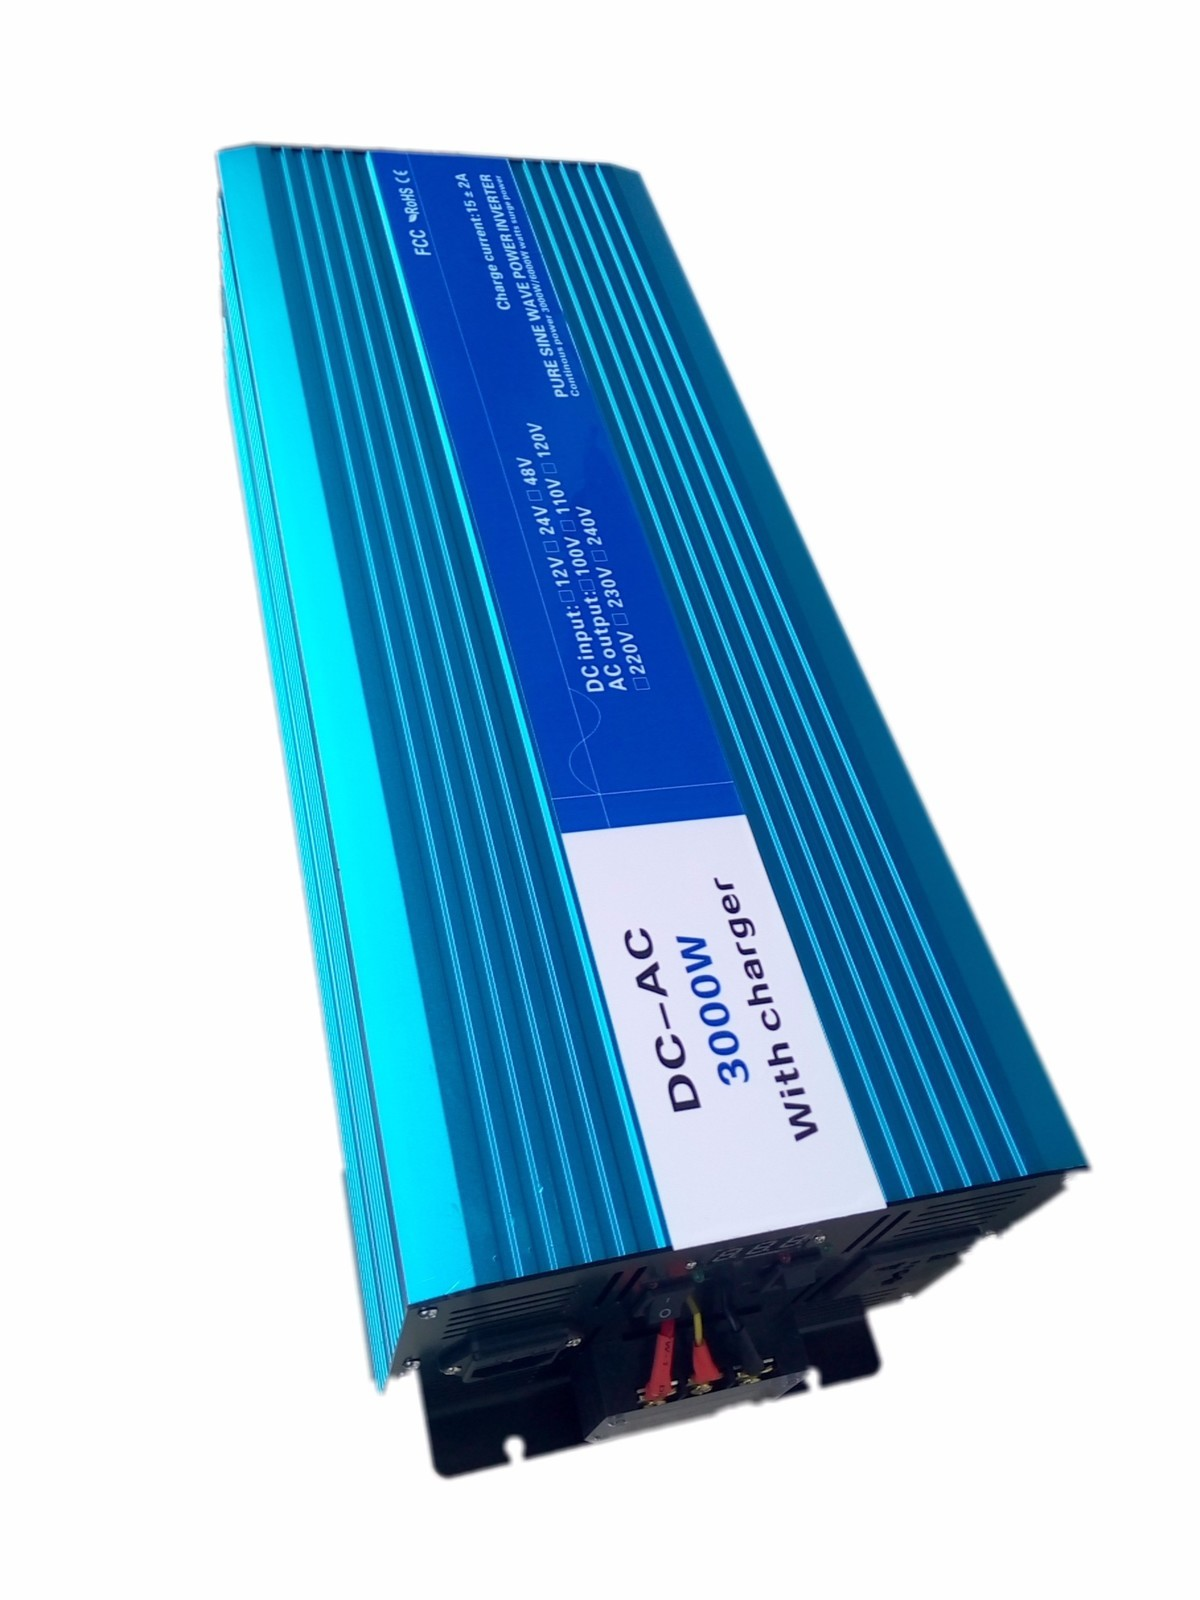 3000W Pure Sine Wave Inverter,DC 12V/24V/48V To AC 110V/220V,off Grid Solar voltage converter With Panel Charger And UPS 1200w pure sine wave inverter dc 12v 24v 48v to ac 110v 220v off grid solar power inverter voltage converter for home battery